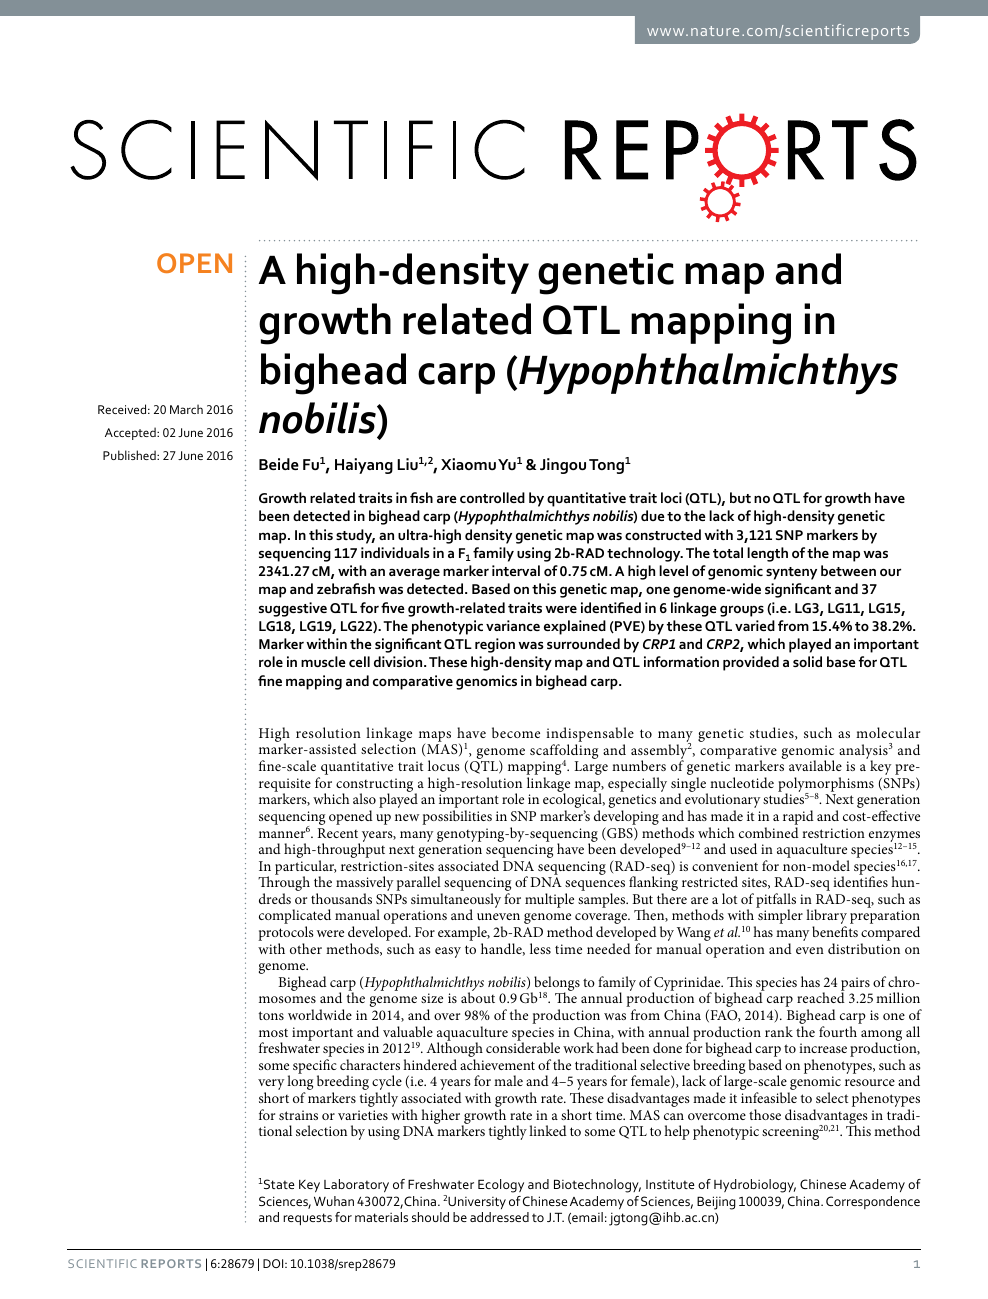 A high-density genetic map and growth related QTL mapping in ... on marker assisted selection, gene mapping, copy-number variation, test cross, quantitative genetics, genetic linkage, dihybrid cross,